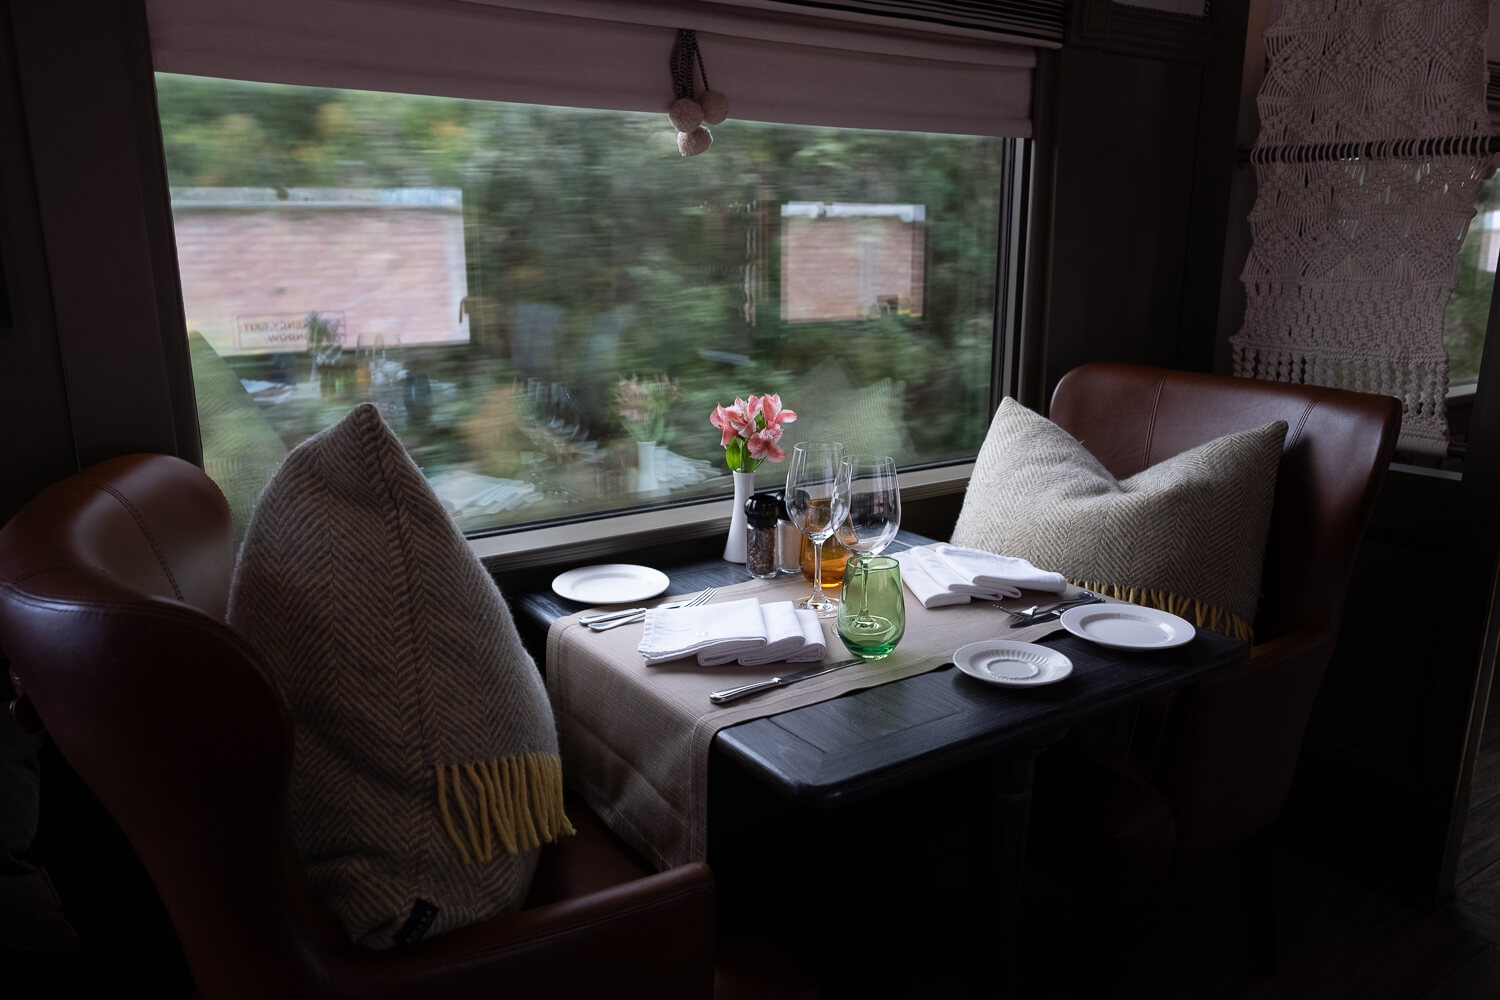 """Seats in the dining car, on the Belmond Andean Explorer. Travel photography and guide by © Natasha Lequepeys for """"And Then I Met Yoko"""". #peru #sacredvalley #cusco #laketiticaca #belmondandeanexplorer #perurail #perutrain #luxurytravel #sleepertrain #photoblog #travelblog #travelphotography #fujifilm #andes #travel #travelperu #cuscotolaketiticaca #spiritofthelake #belmond #puno #southamerica"""